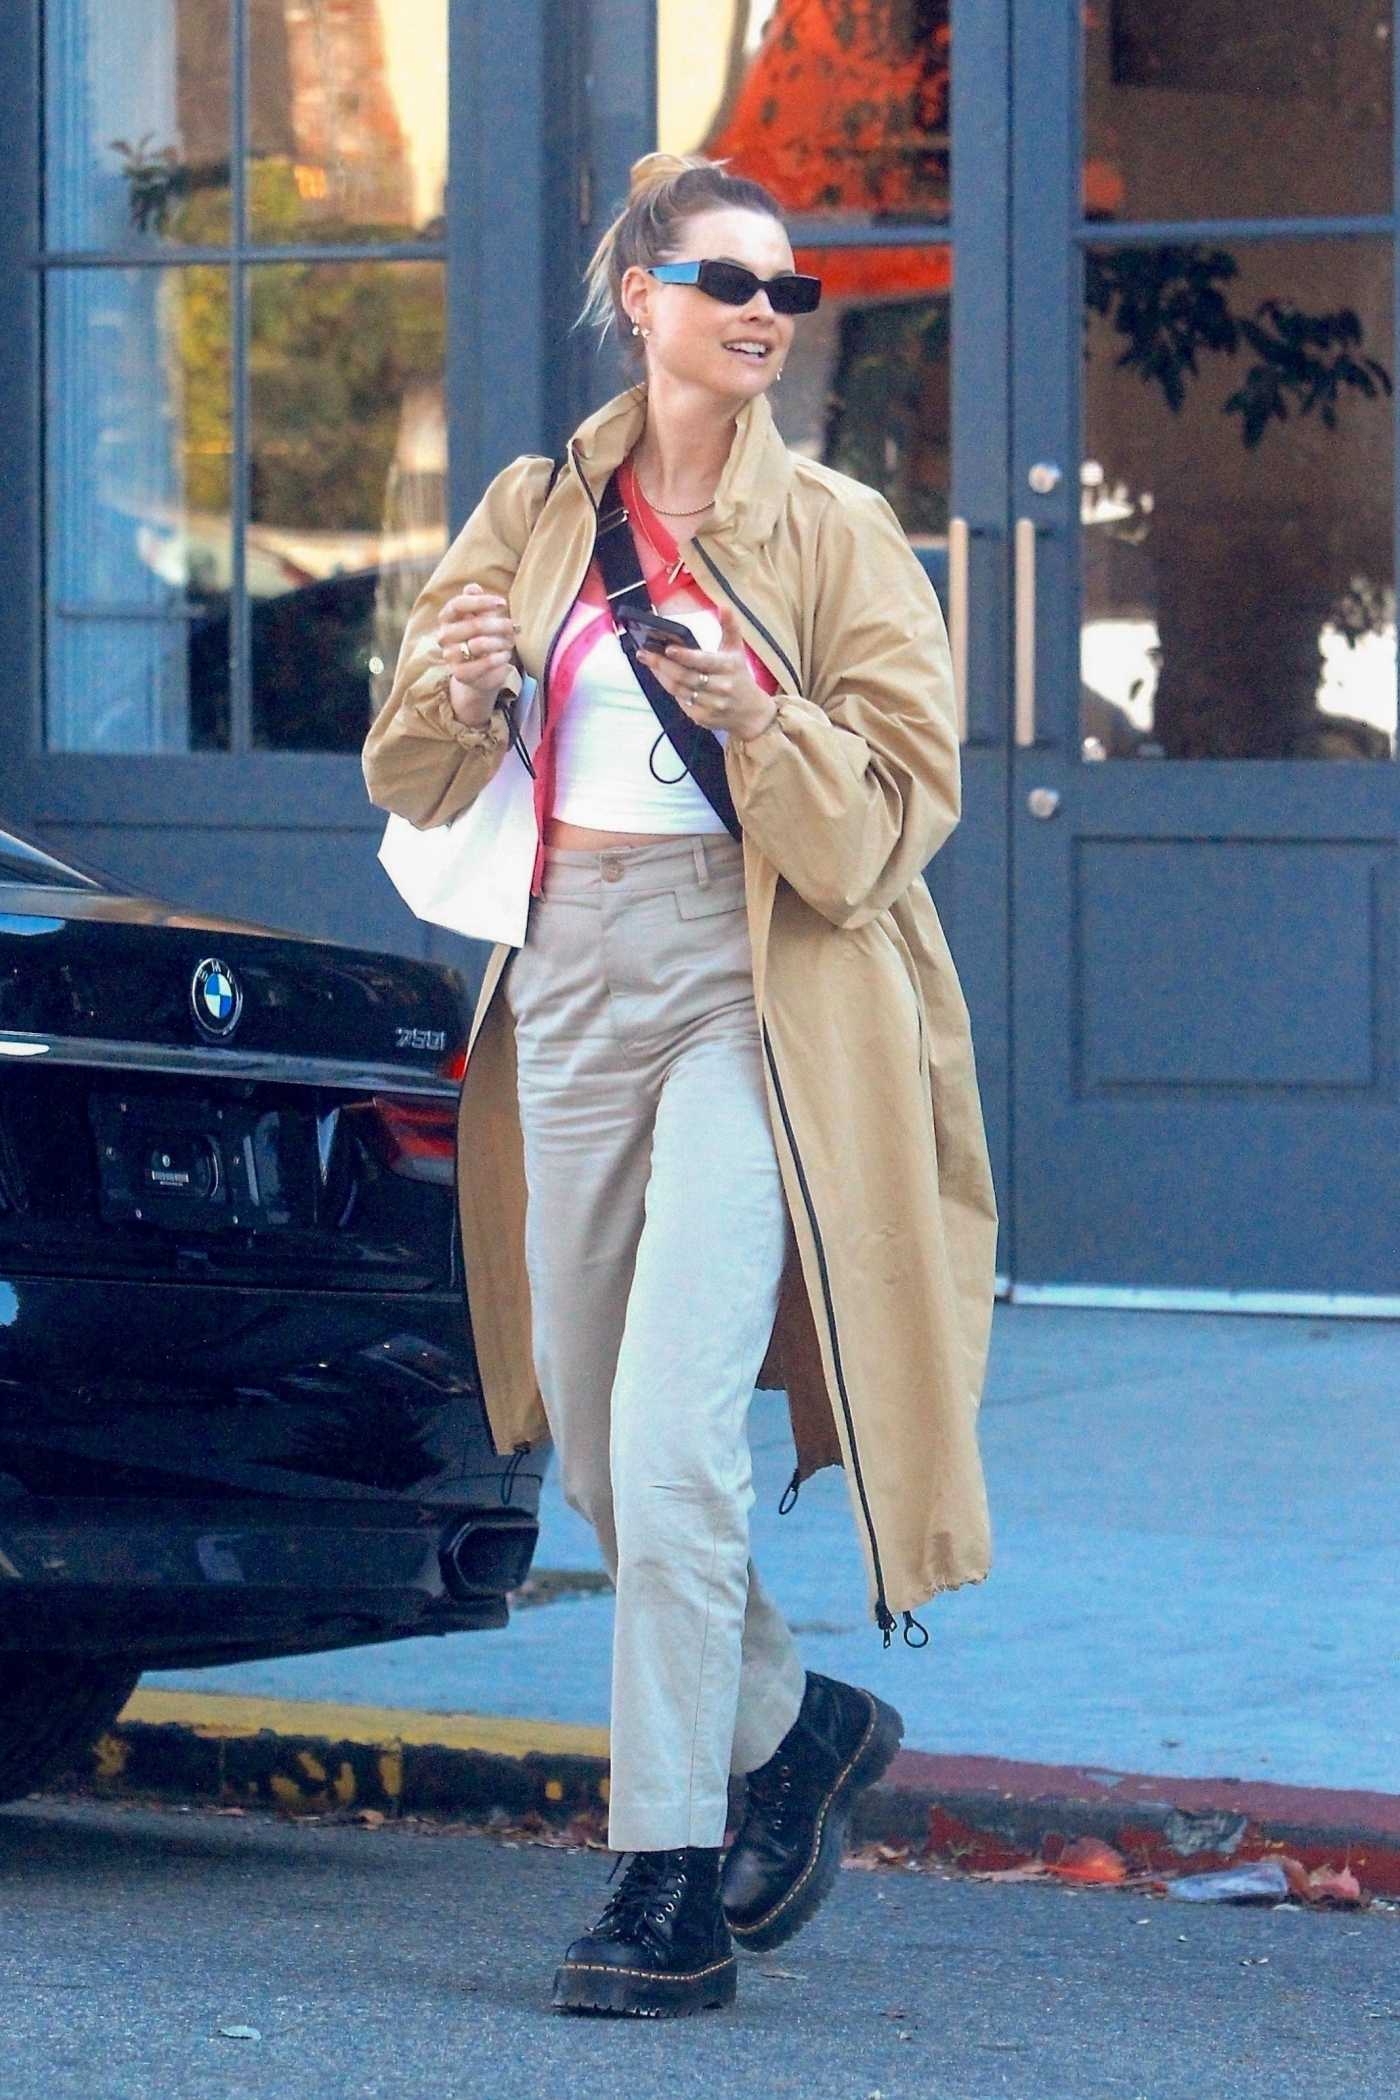 Behati Prinsloo in a Beige Trench Coat Goes Shopping in West Hollywood 01/28/2020